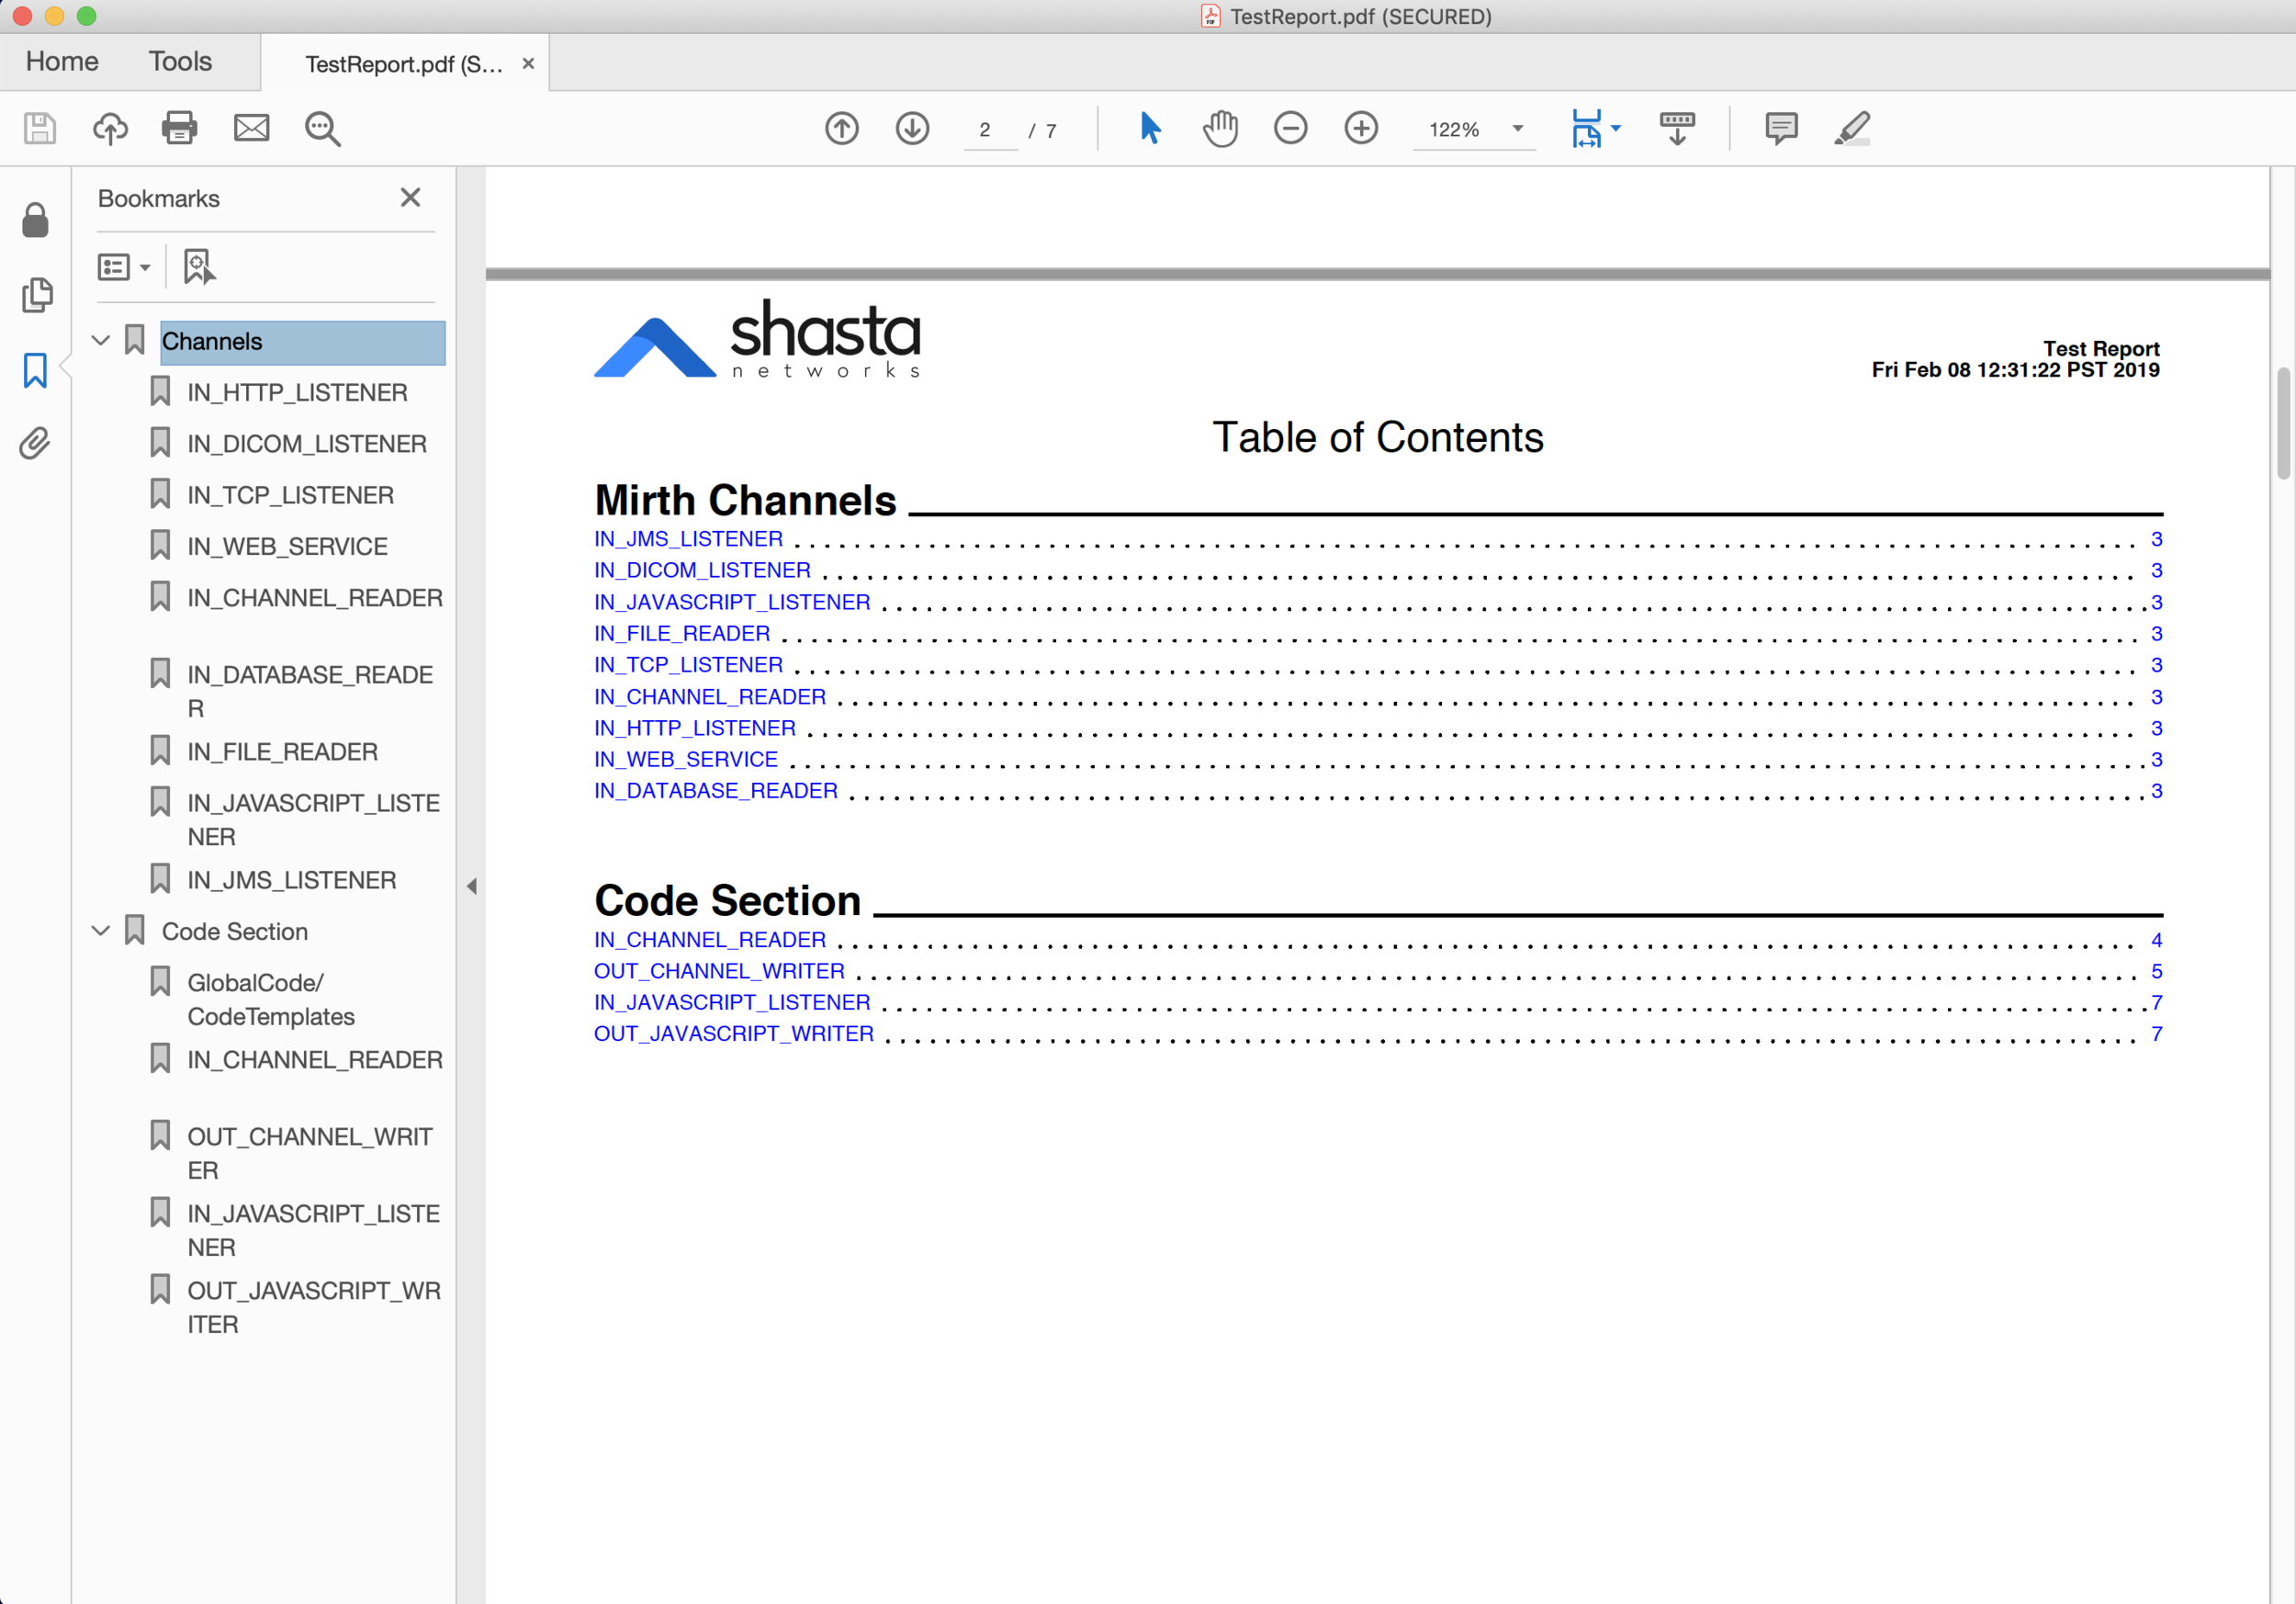 PDF generated by MirthVisualizer (Table of Contents and Bookmarks)